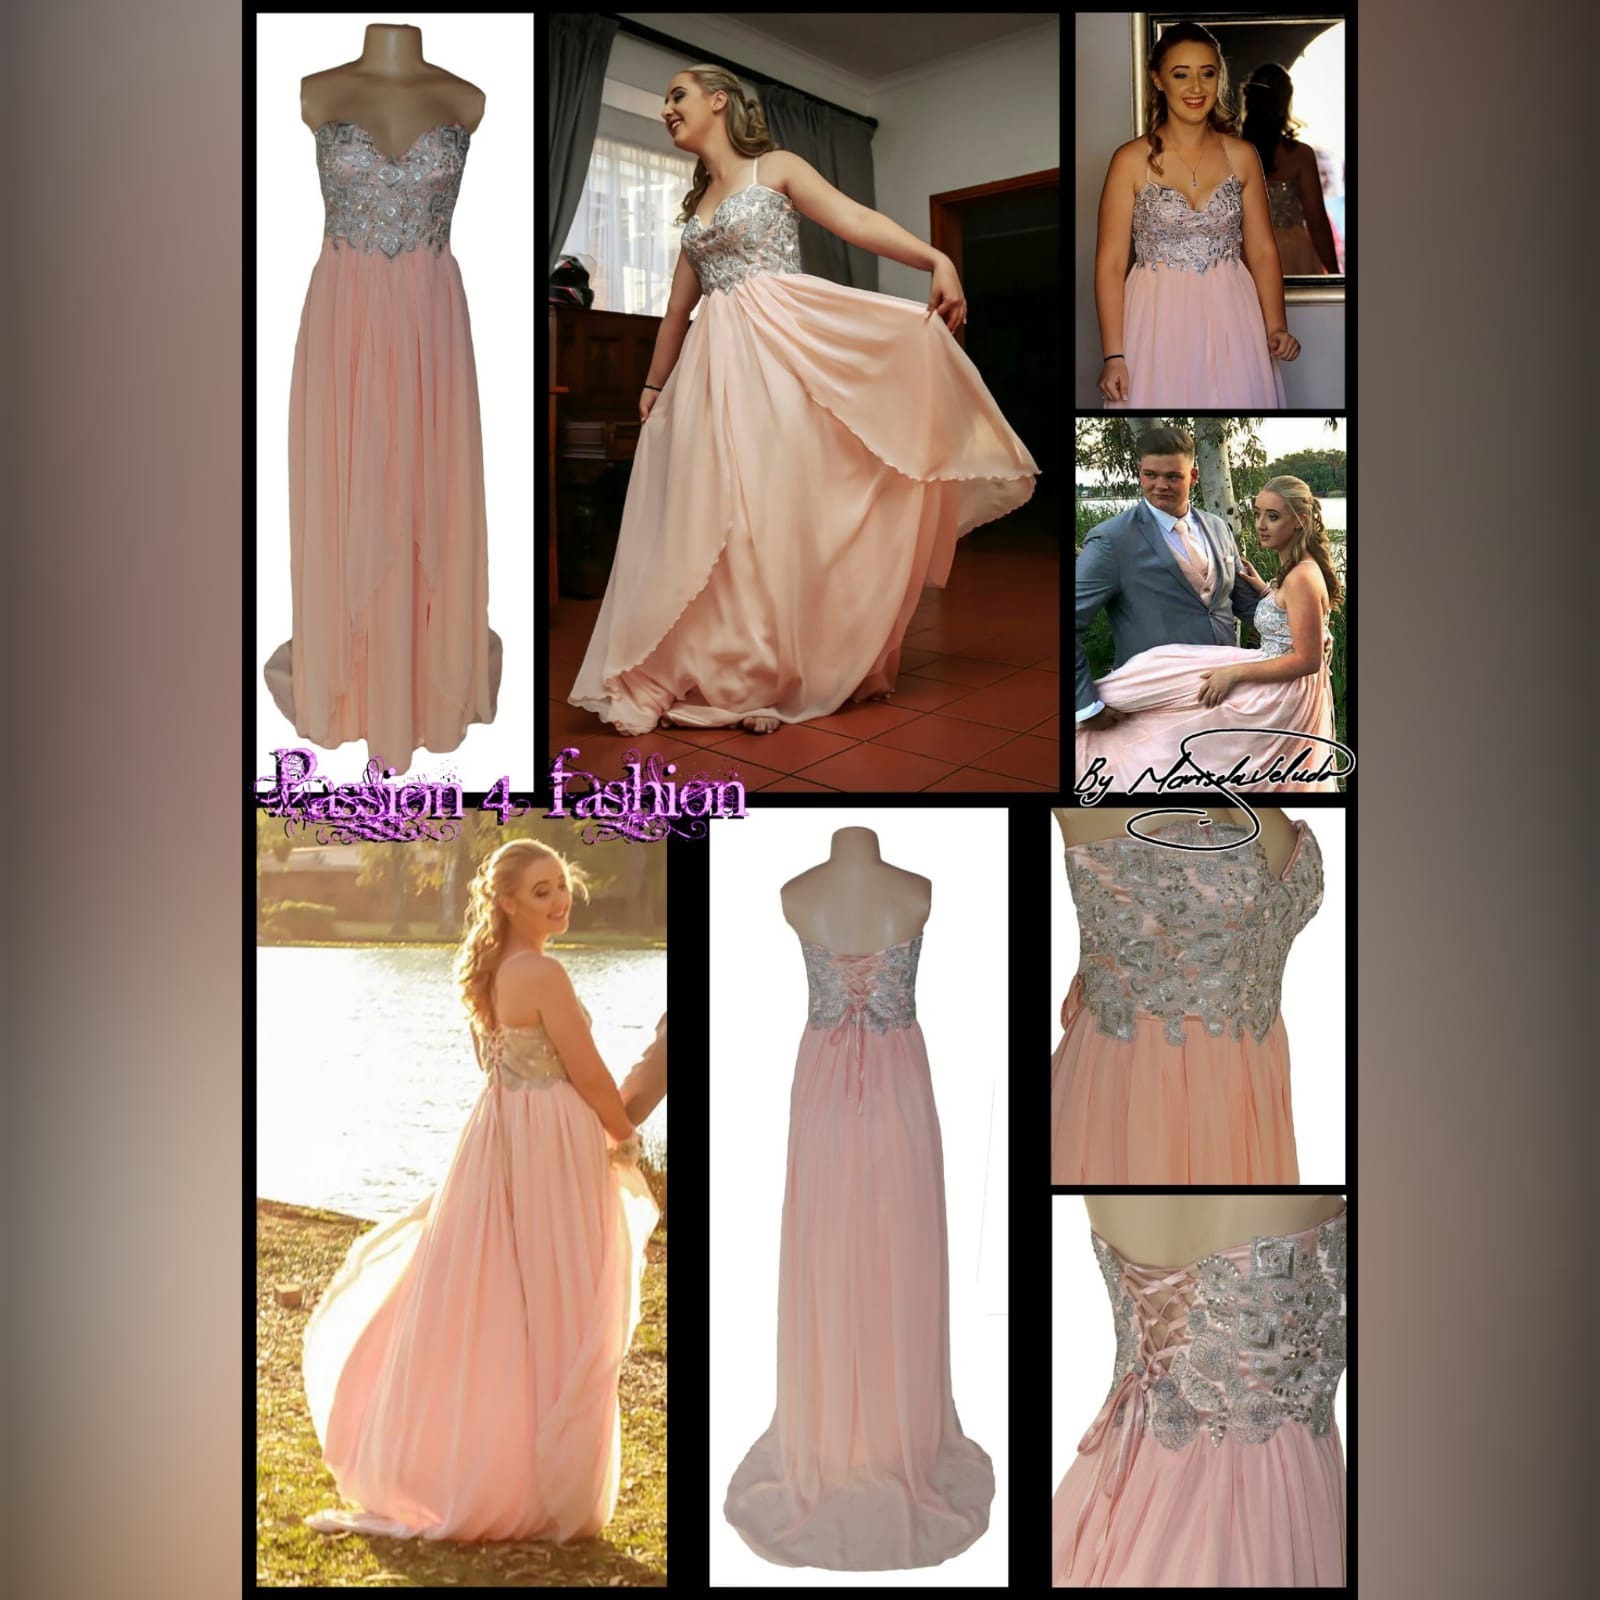 Peach and silver fun prom dress 9 peach and silver fun prom dress. Bodice detailed with appliques and beads, with a lace-up back. Bottom with gathered chiffon and an overlayer opened in front.